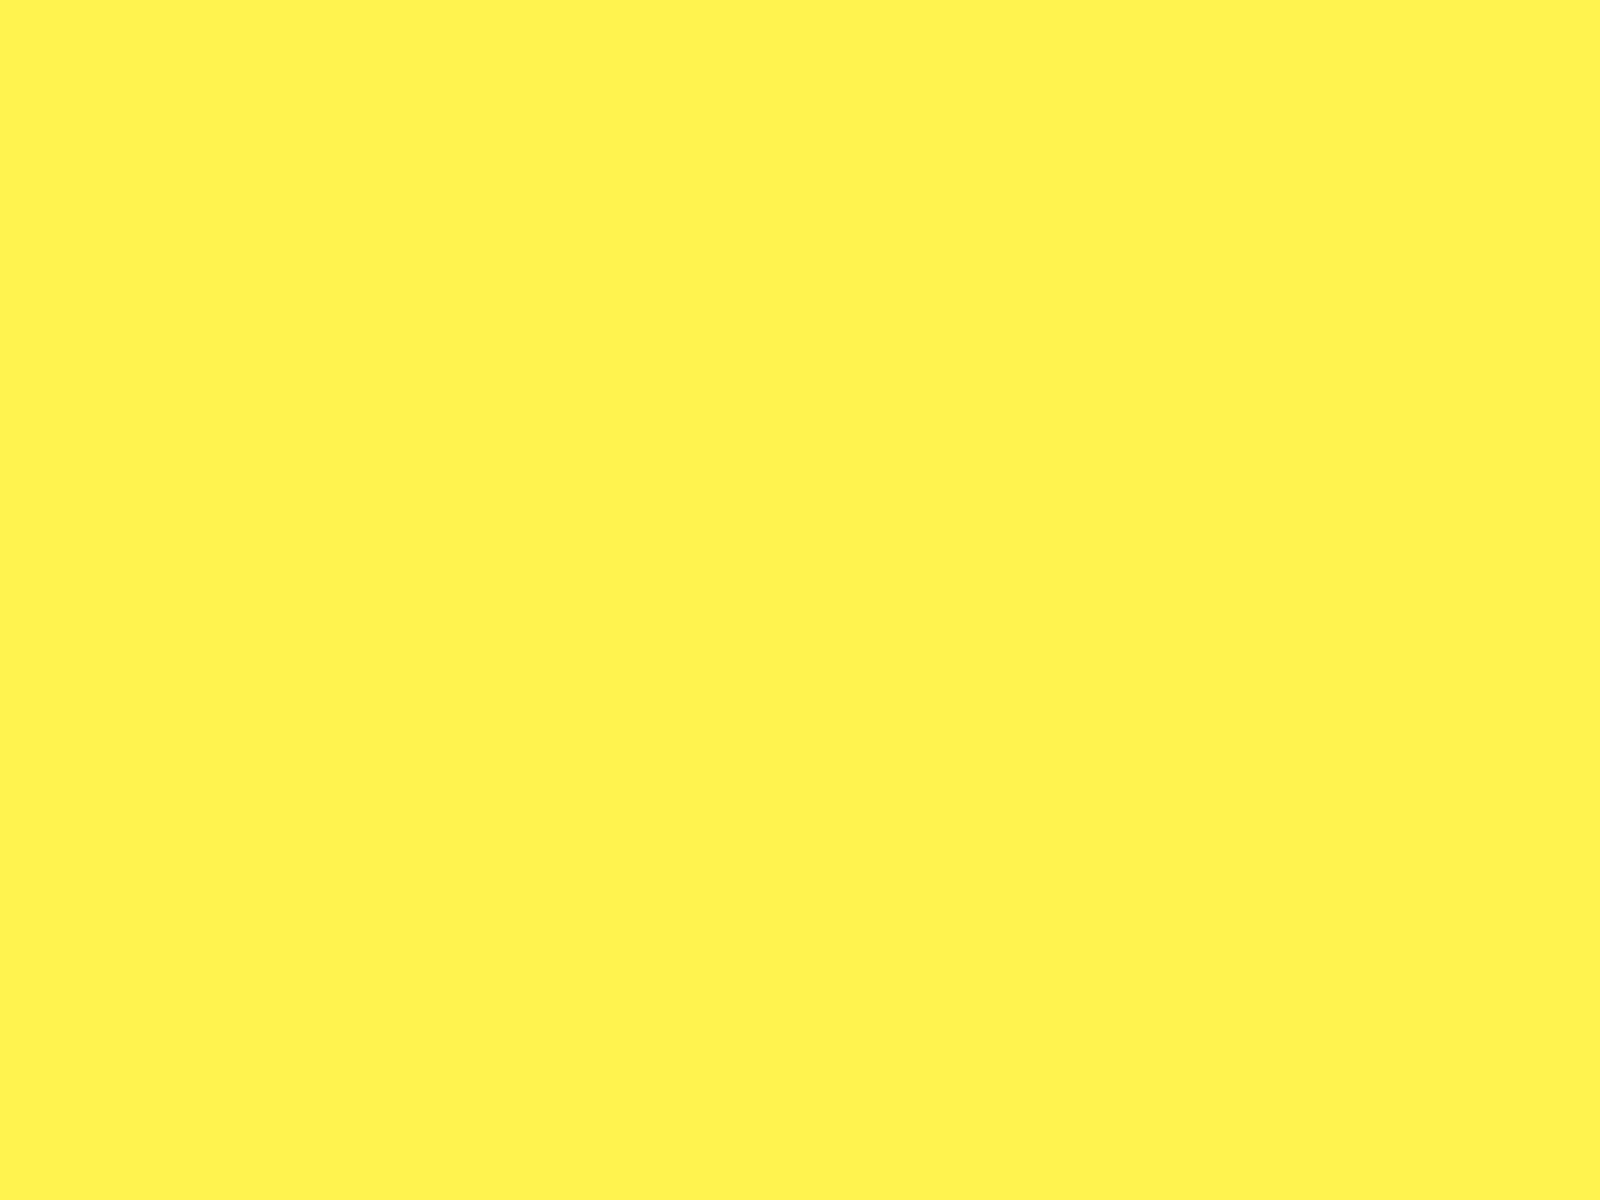 1600x1200 Lemon Yellow Solid Color Background